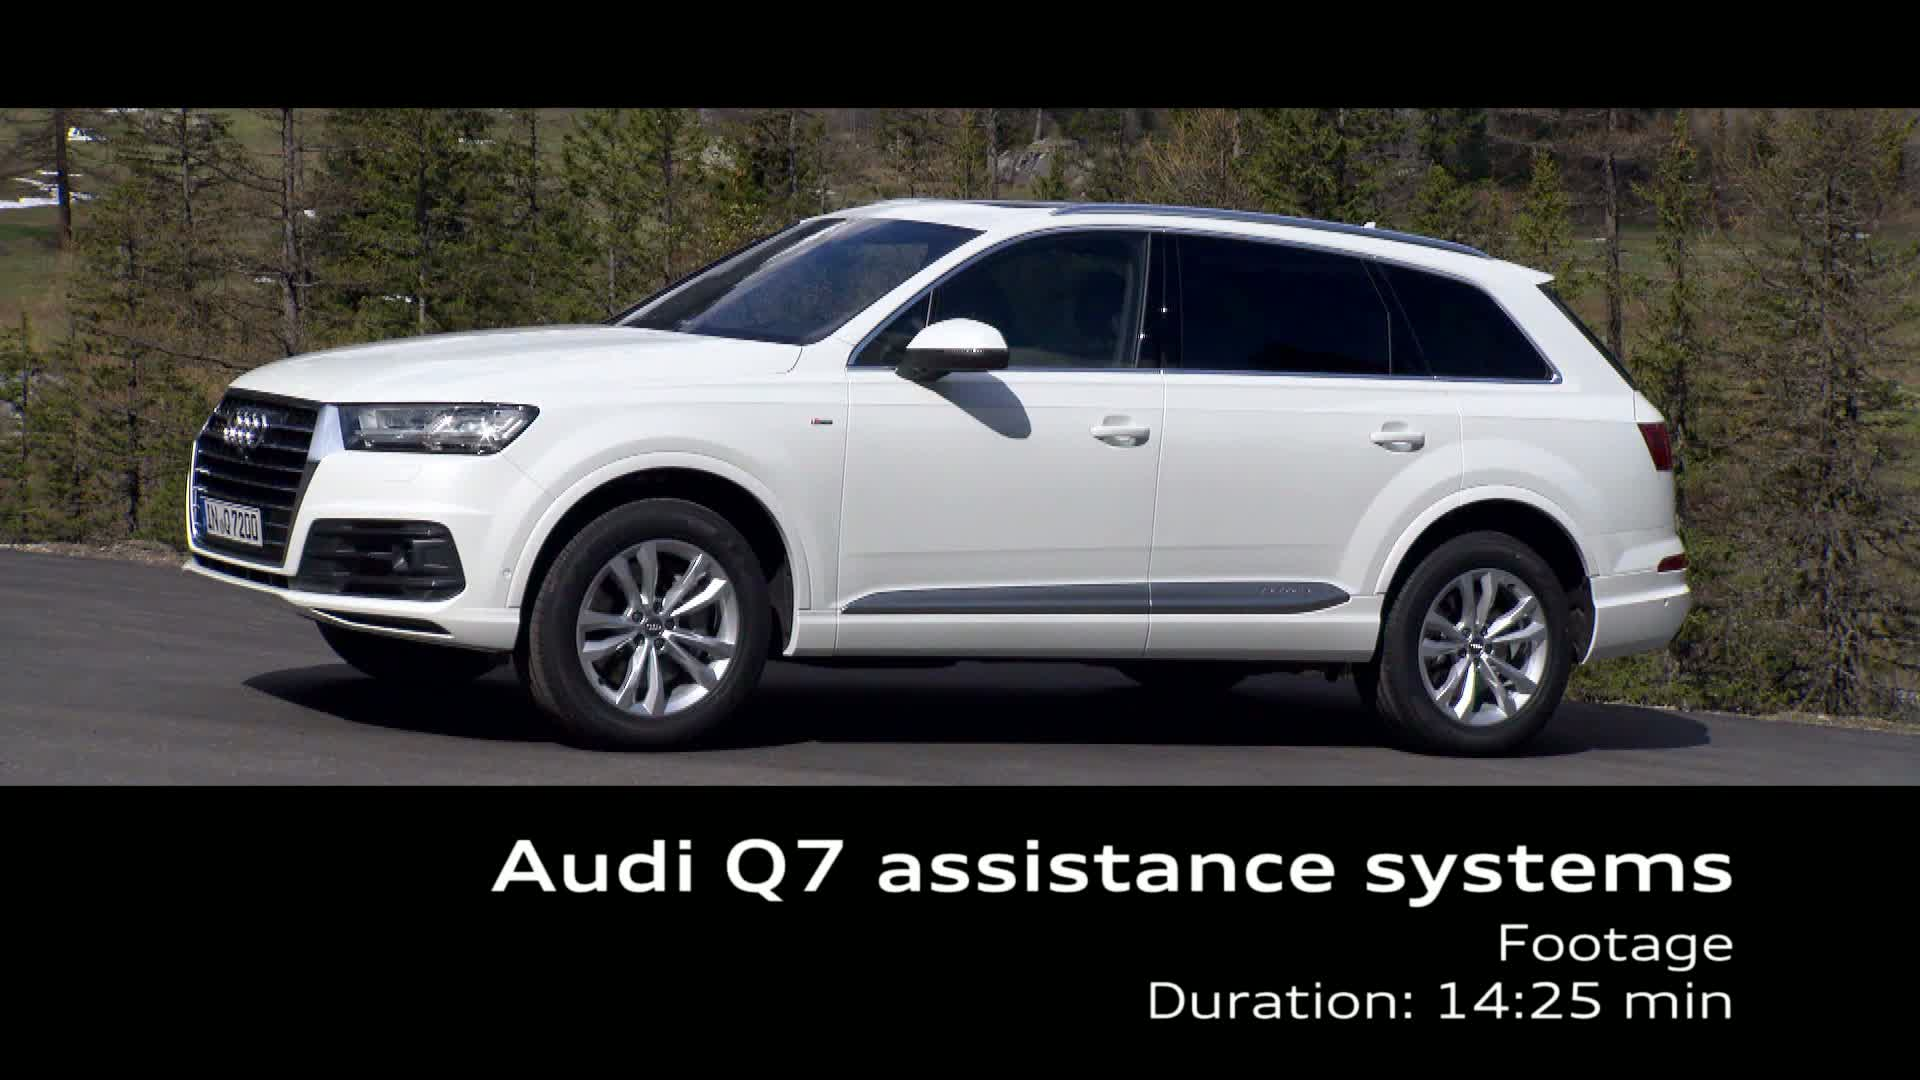 Audi Q7 - Footage driver assistance systems